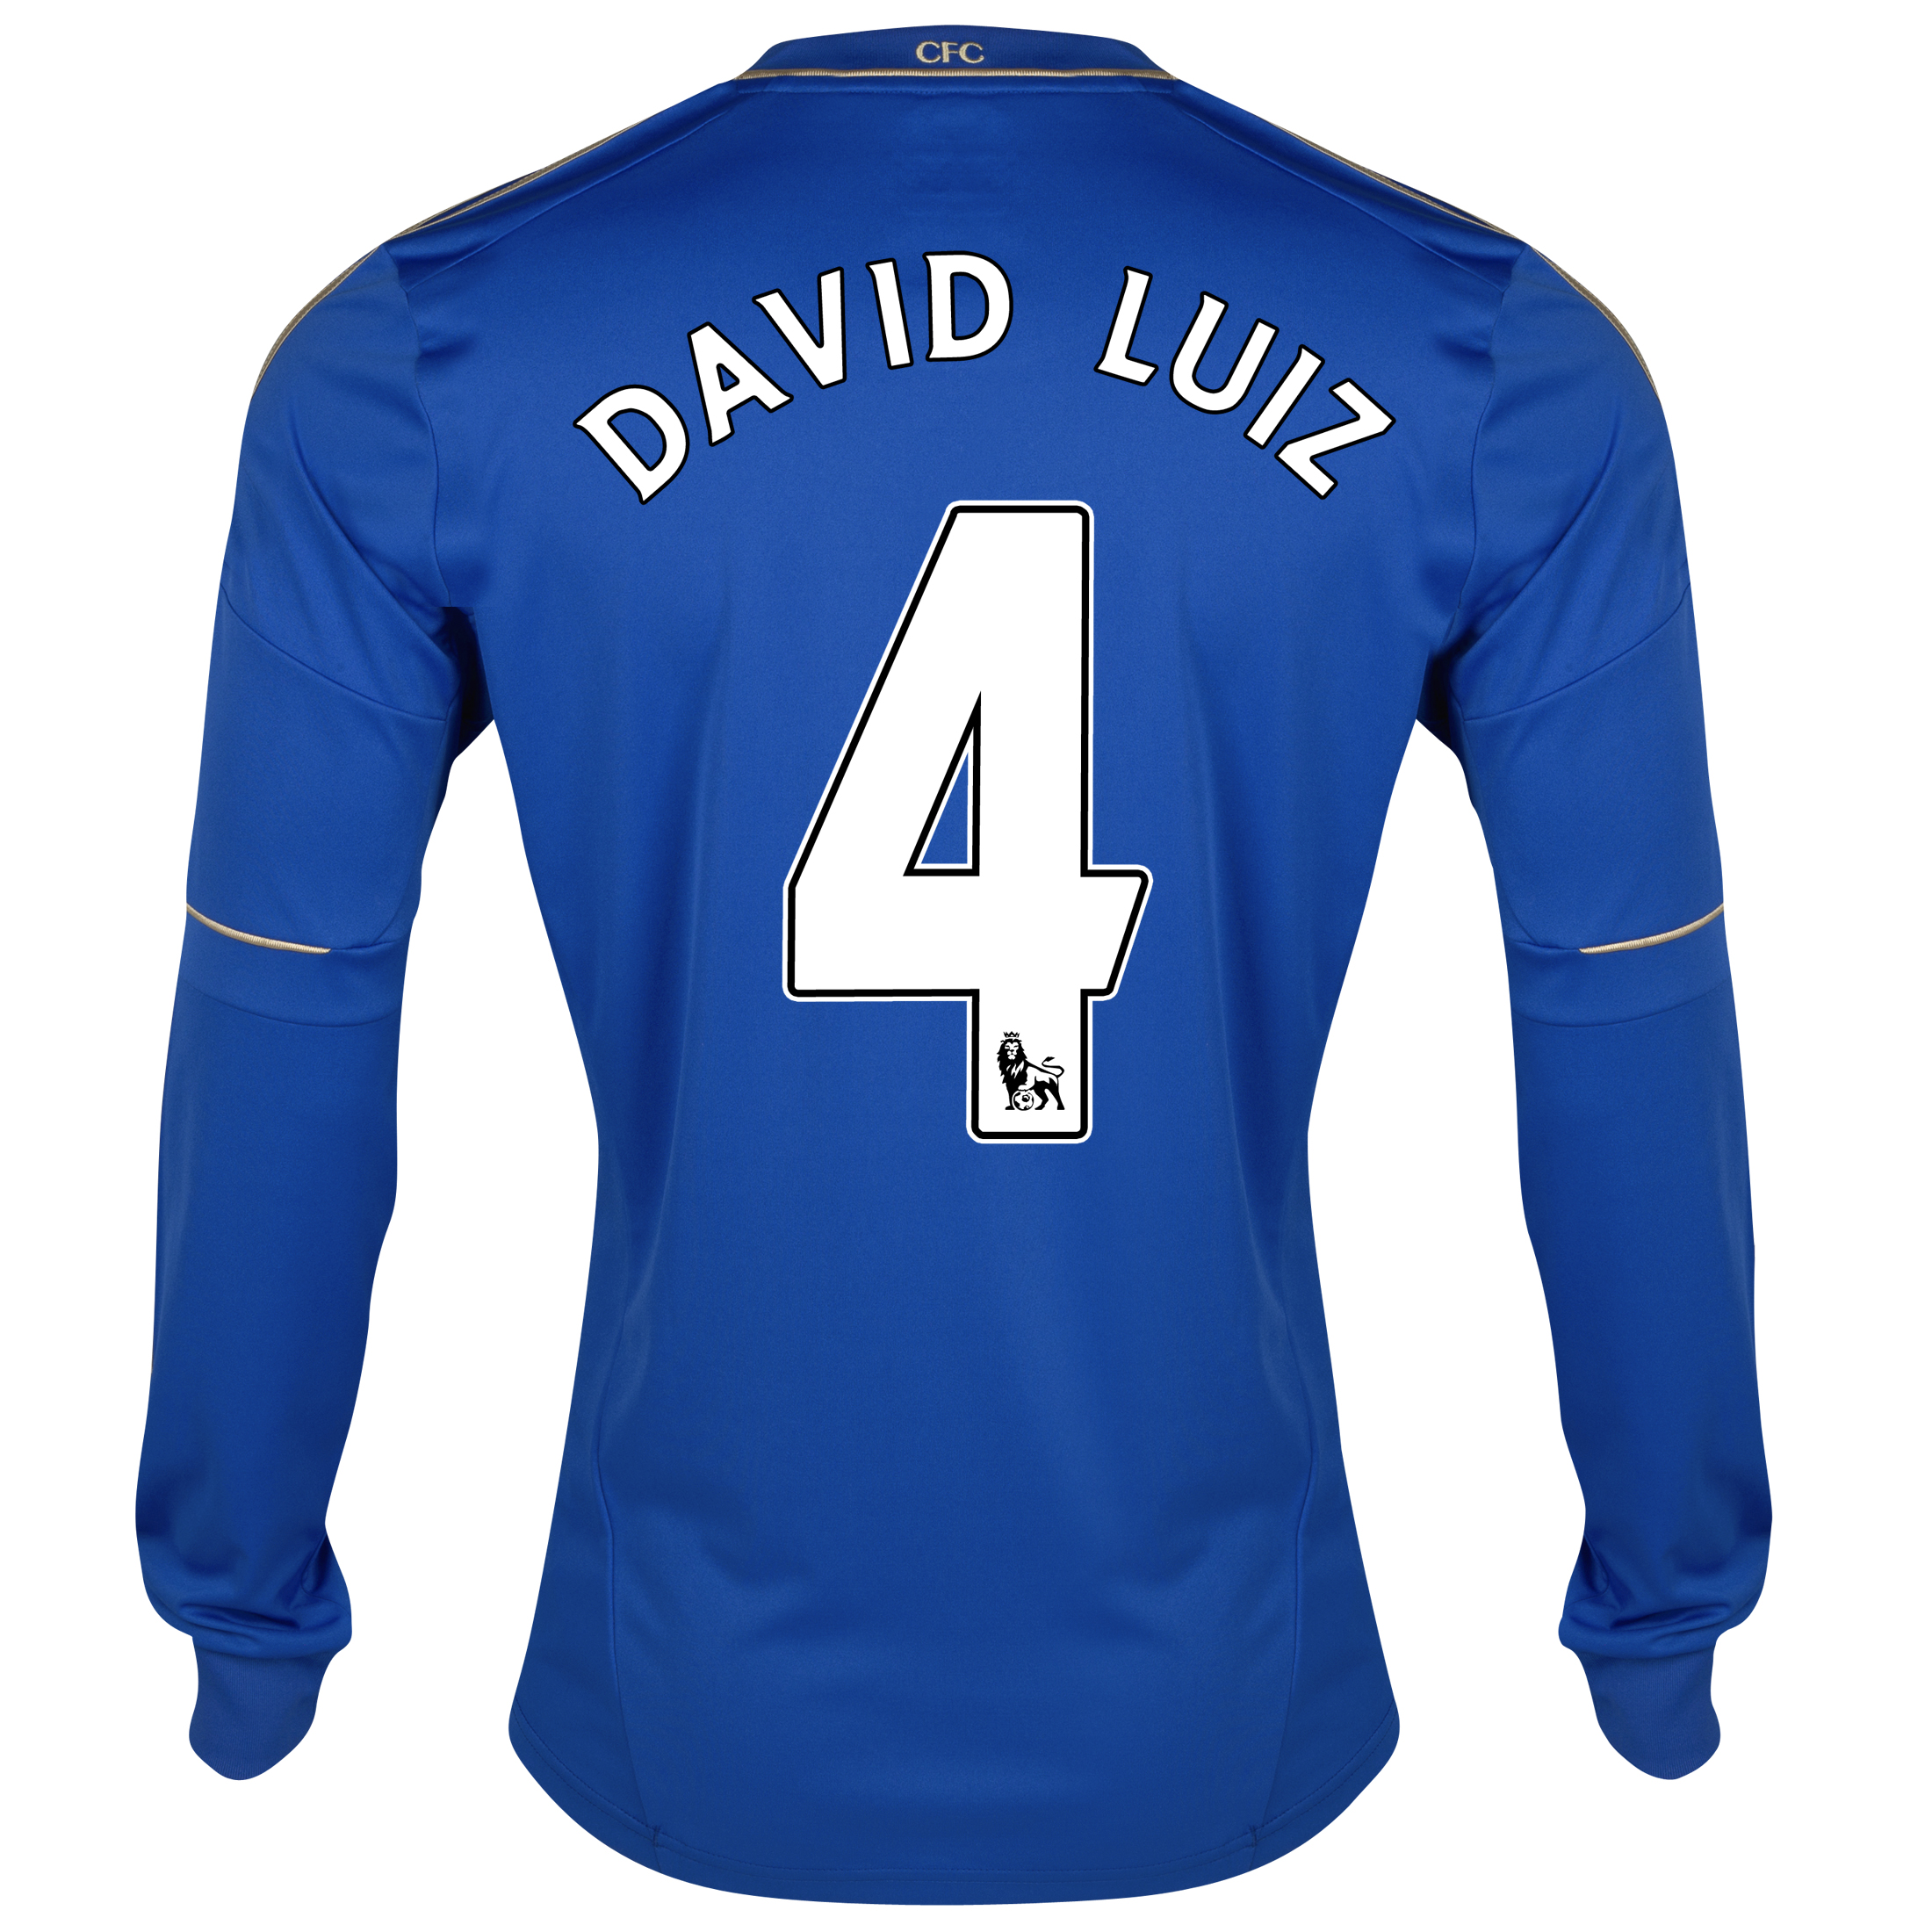 Chelsea Home Shirt 2012/13 - Long Sleeved - Youths with David Luiz 4 printing